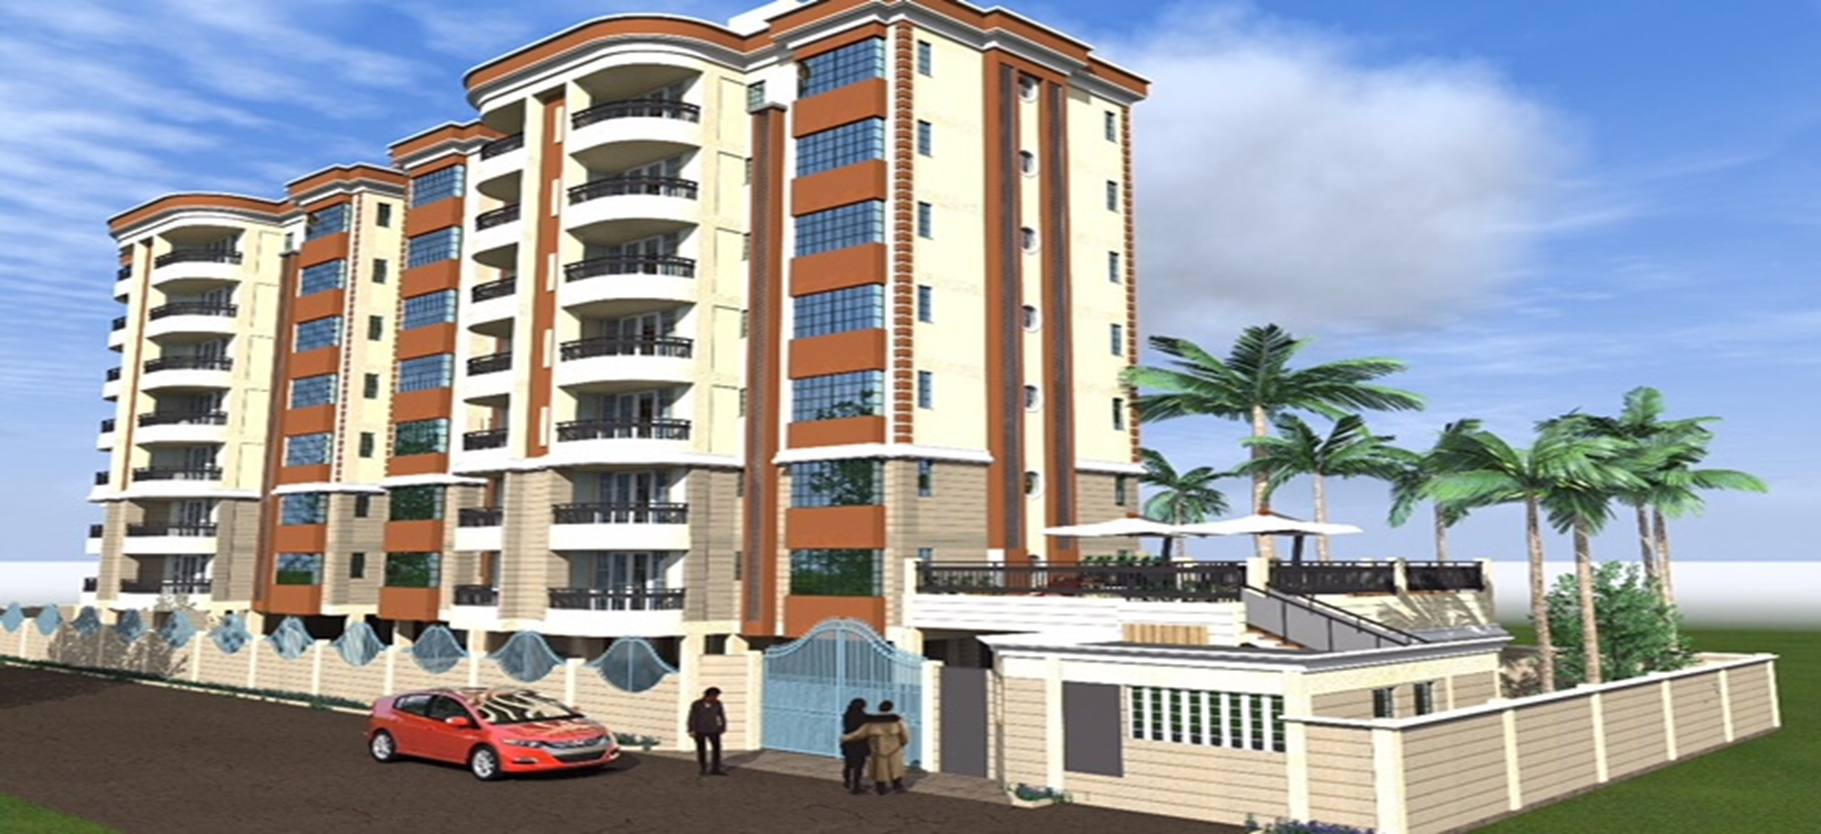 Finheights Apartments – Kikuyu Road, Riruta